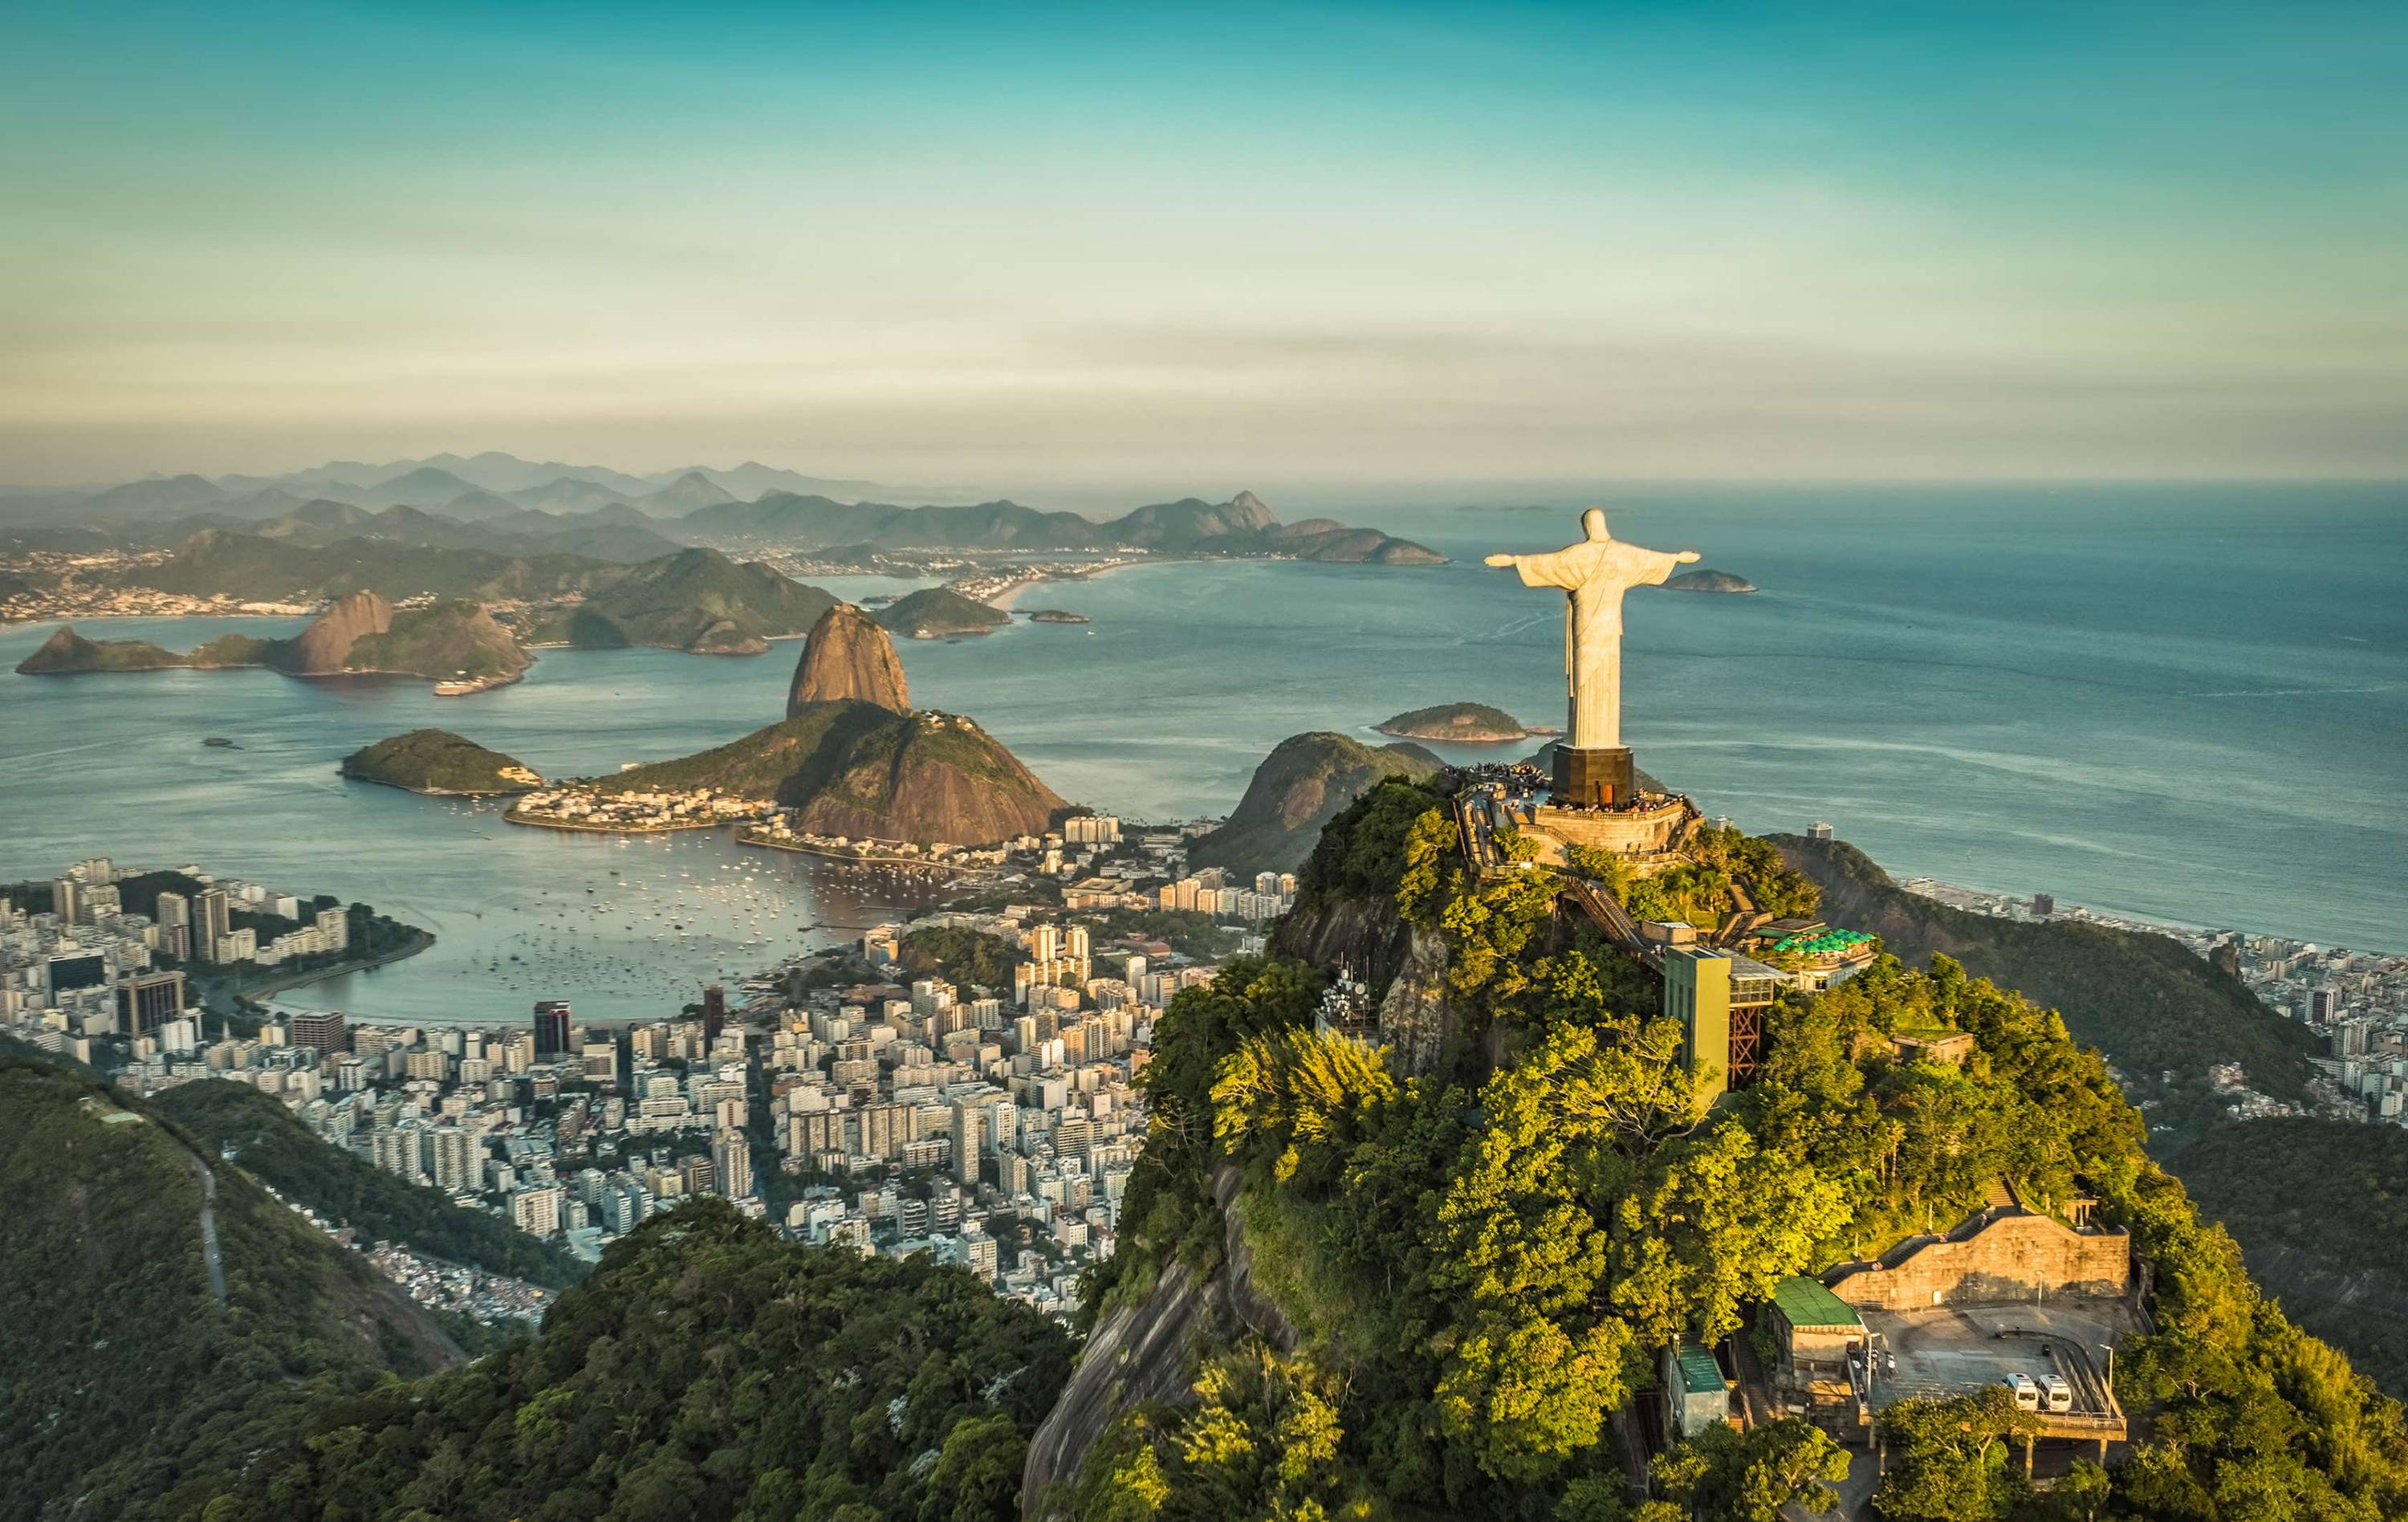 Rio, Brazil, home to one of the new solar projects